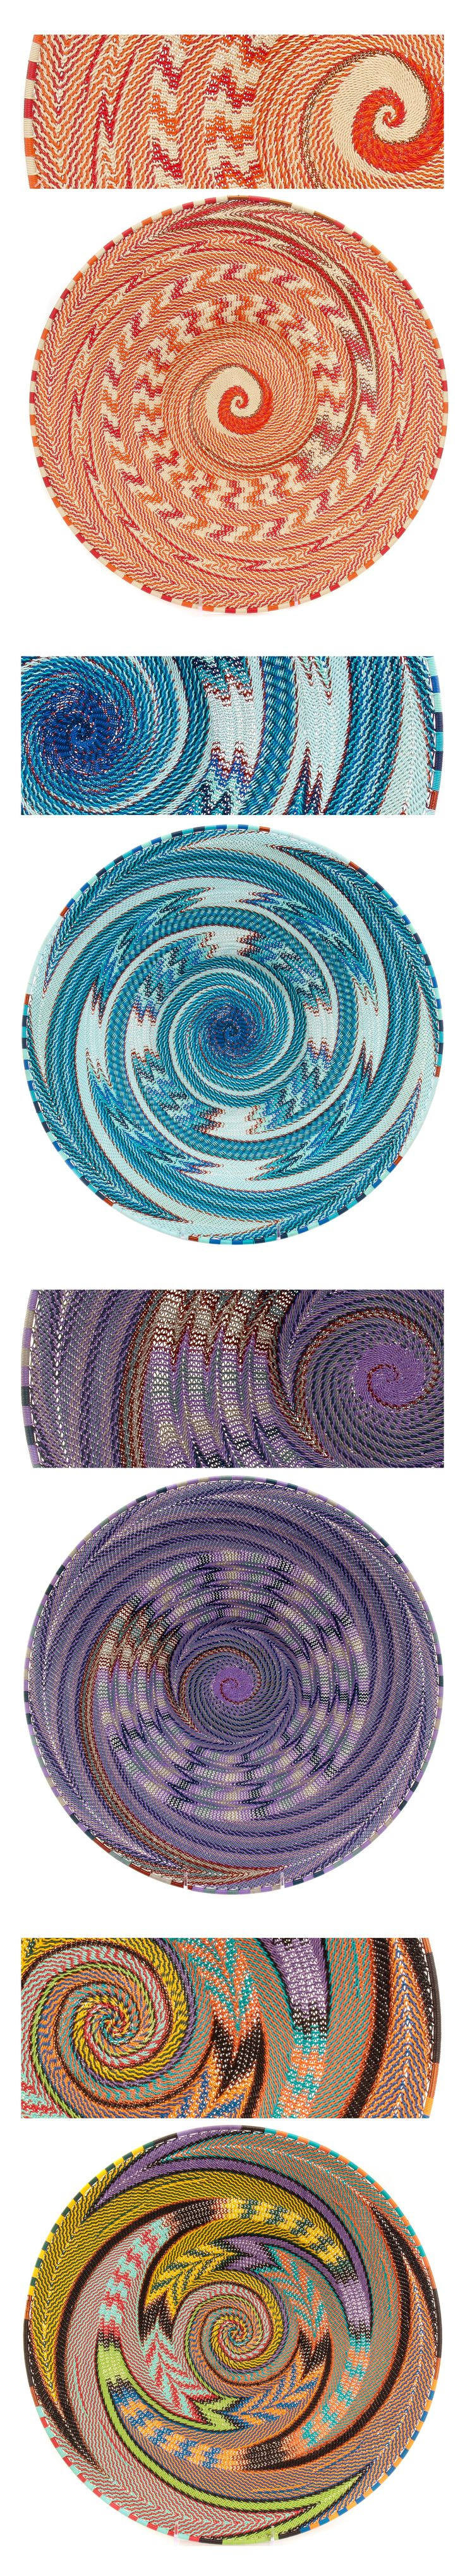 "Masterweave platters by Ben Makhanya  |  Zulu ""Telephone Wire"" baskets are vibrant and mesmerizing, but weaver Ben Makhanya creates pieces that are far superior to the rest. Wire baskets are woven by wrapping the rim FIRST, then working in toward the center of the bowl, which is backwards from traditional basket weaving. Ben Makhanya manages to wrangle more colors and more changes in direction and more special weaves into his platters, creating a pattern that seems to swirl as you look at…"